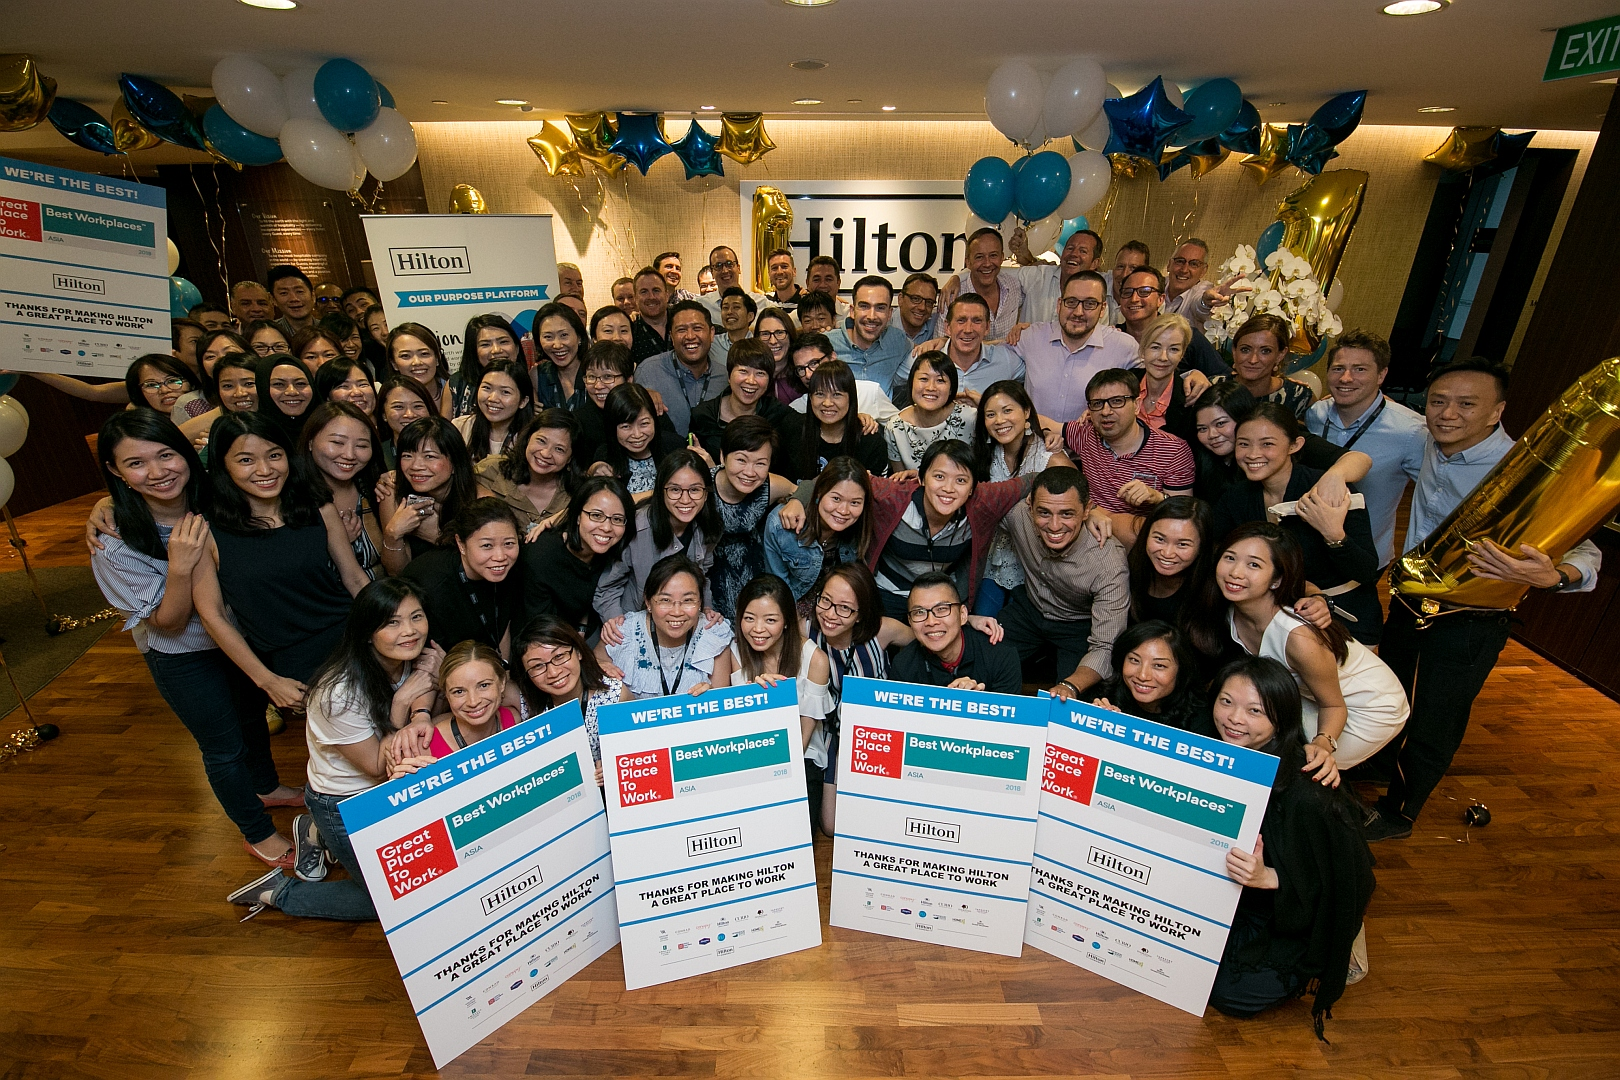 Hilton named Asia's best multinational workplace 2018